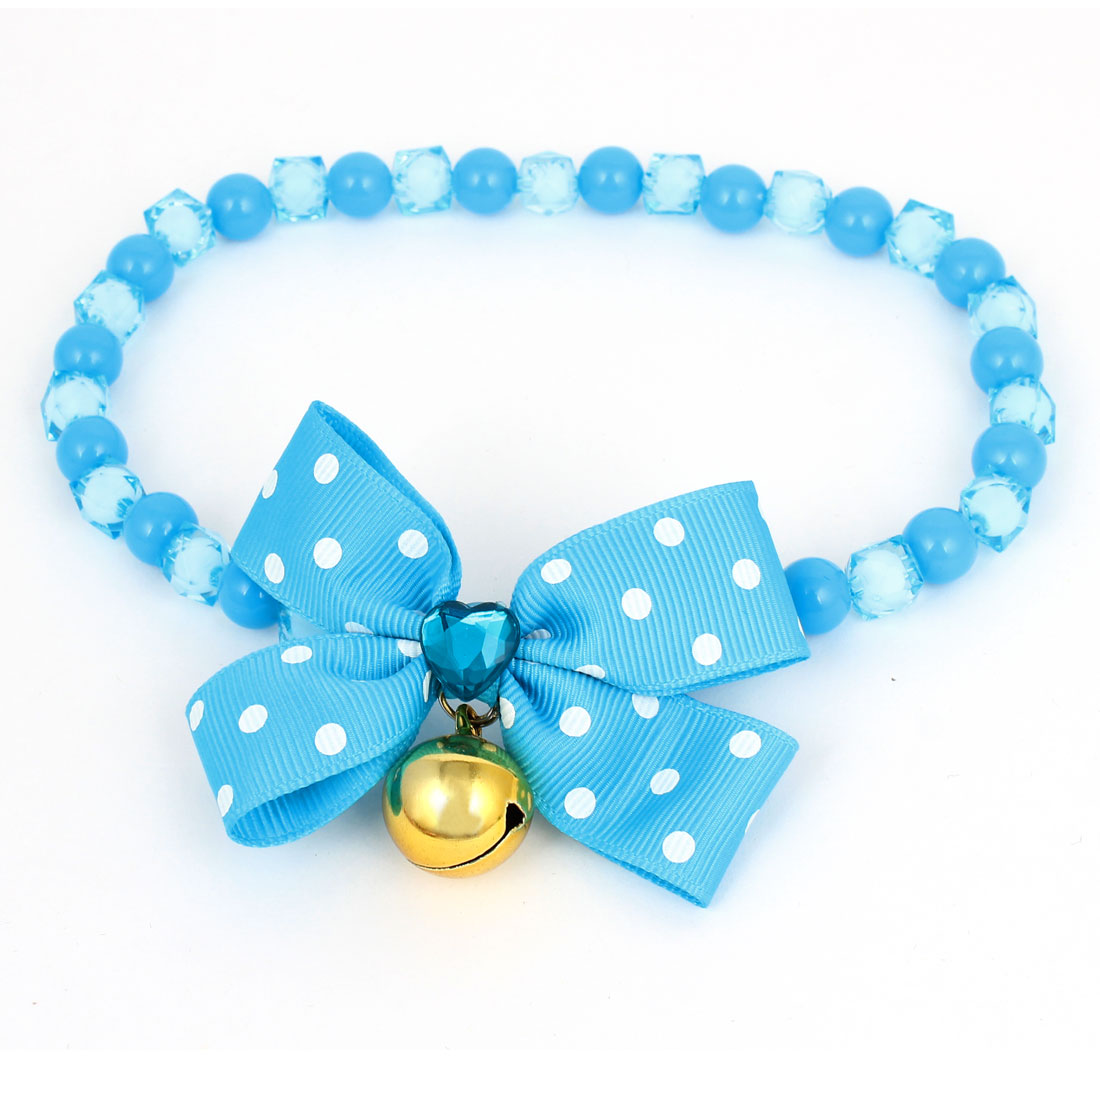 Metal Bell Pendant Bowtie Accent Pet Dog Plastic Beads Collar Necklace Blue L